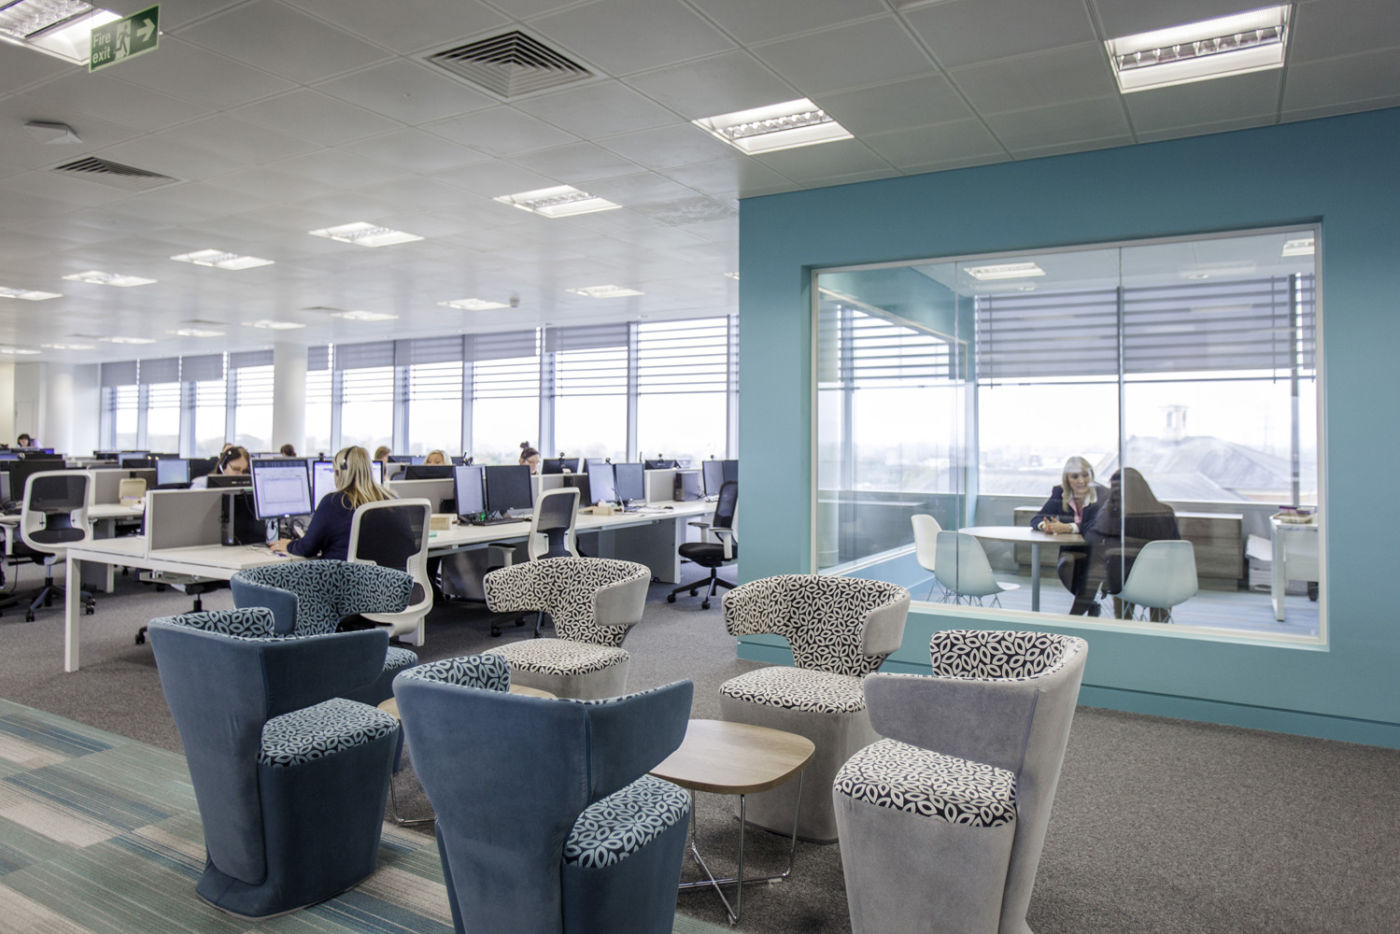 Open plan office design with staff working and a glass meeting room